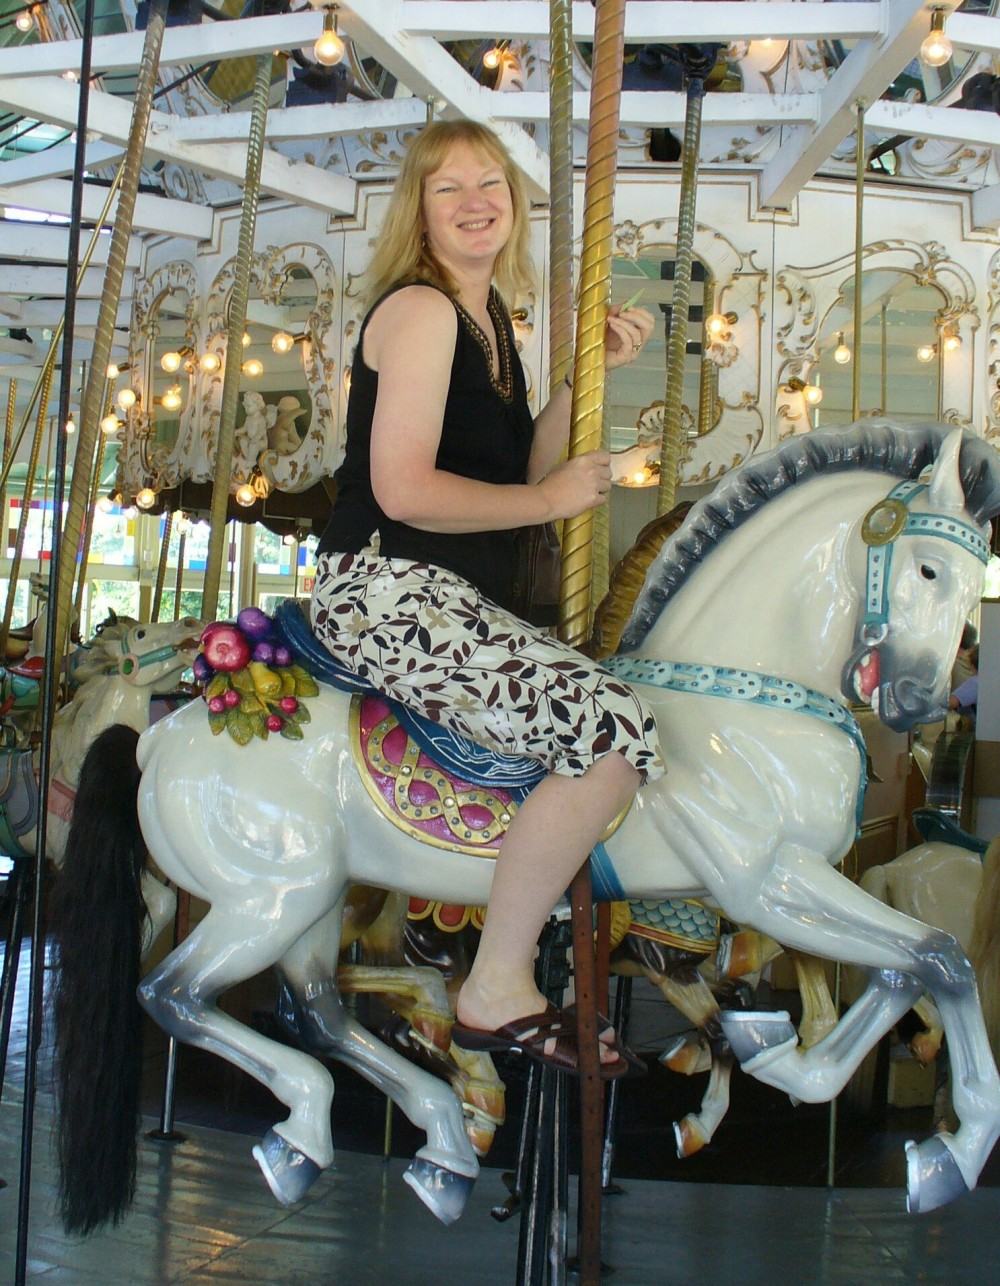 julie-on-horse-a-2